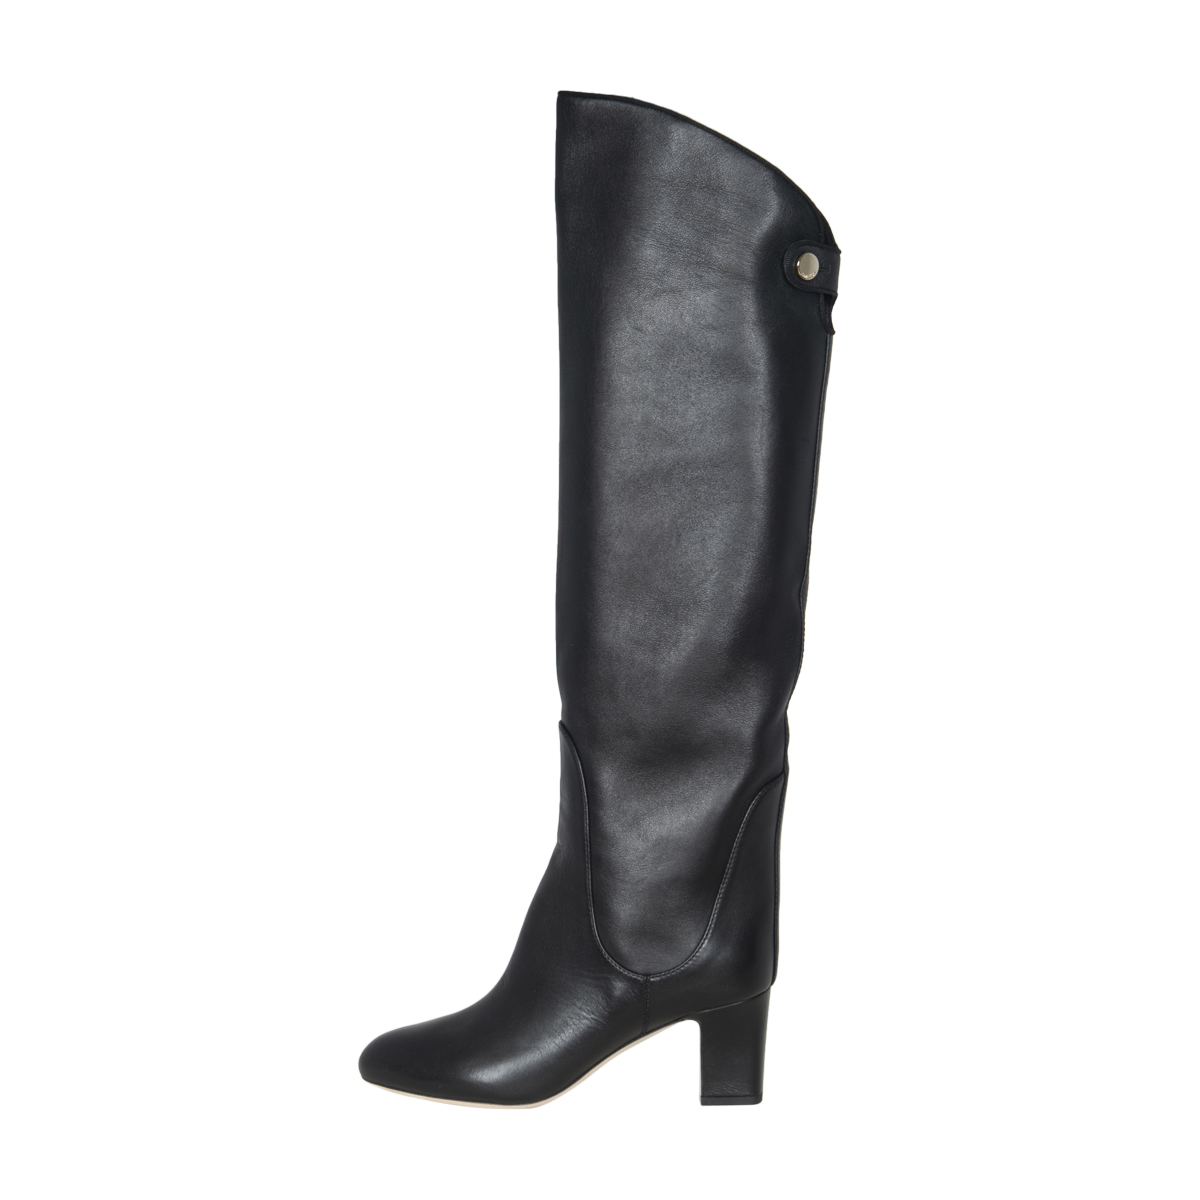 Jimmy Choo Tall Leather Boots